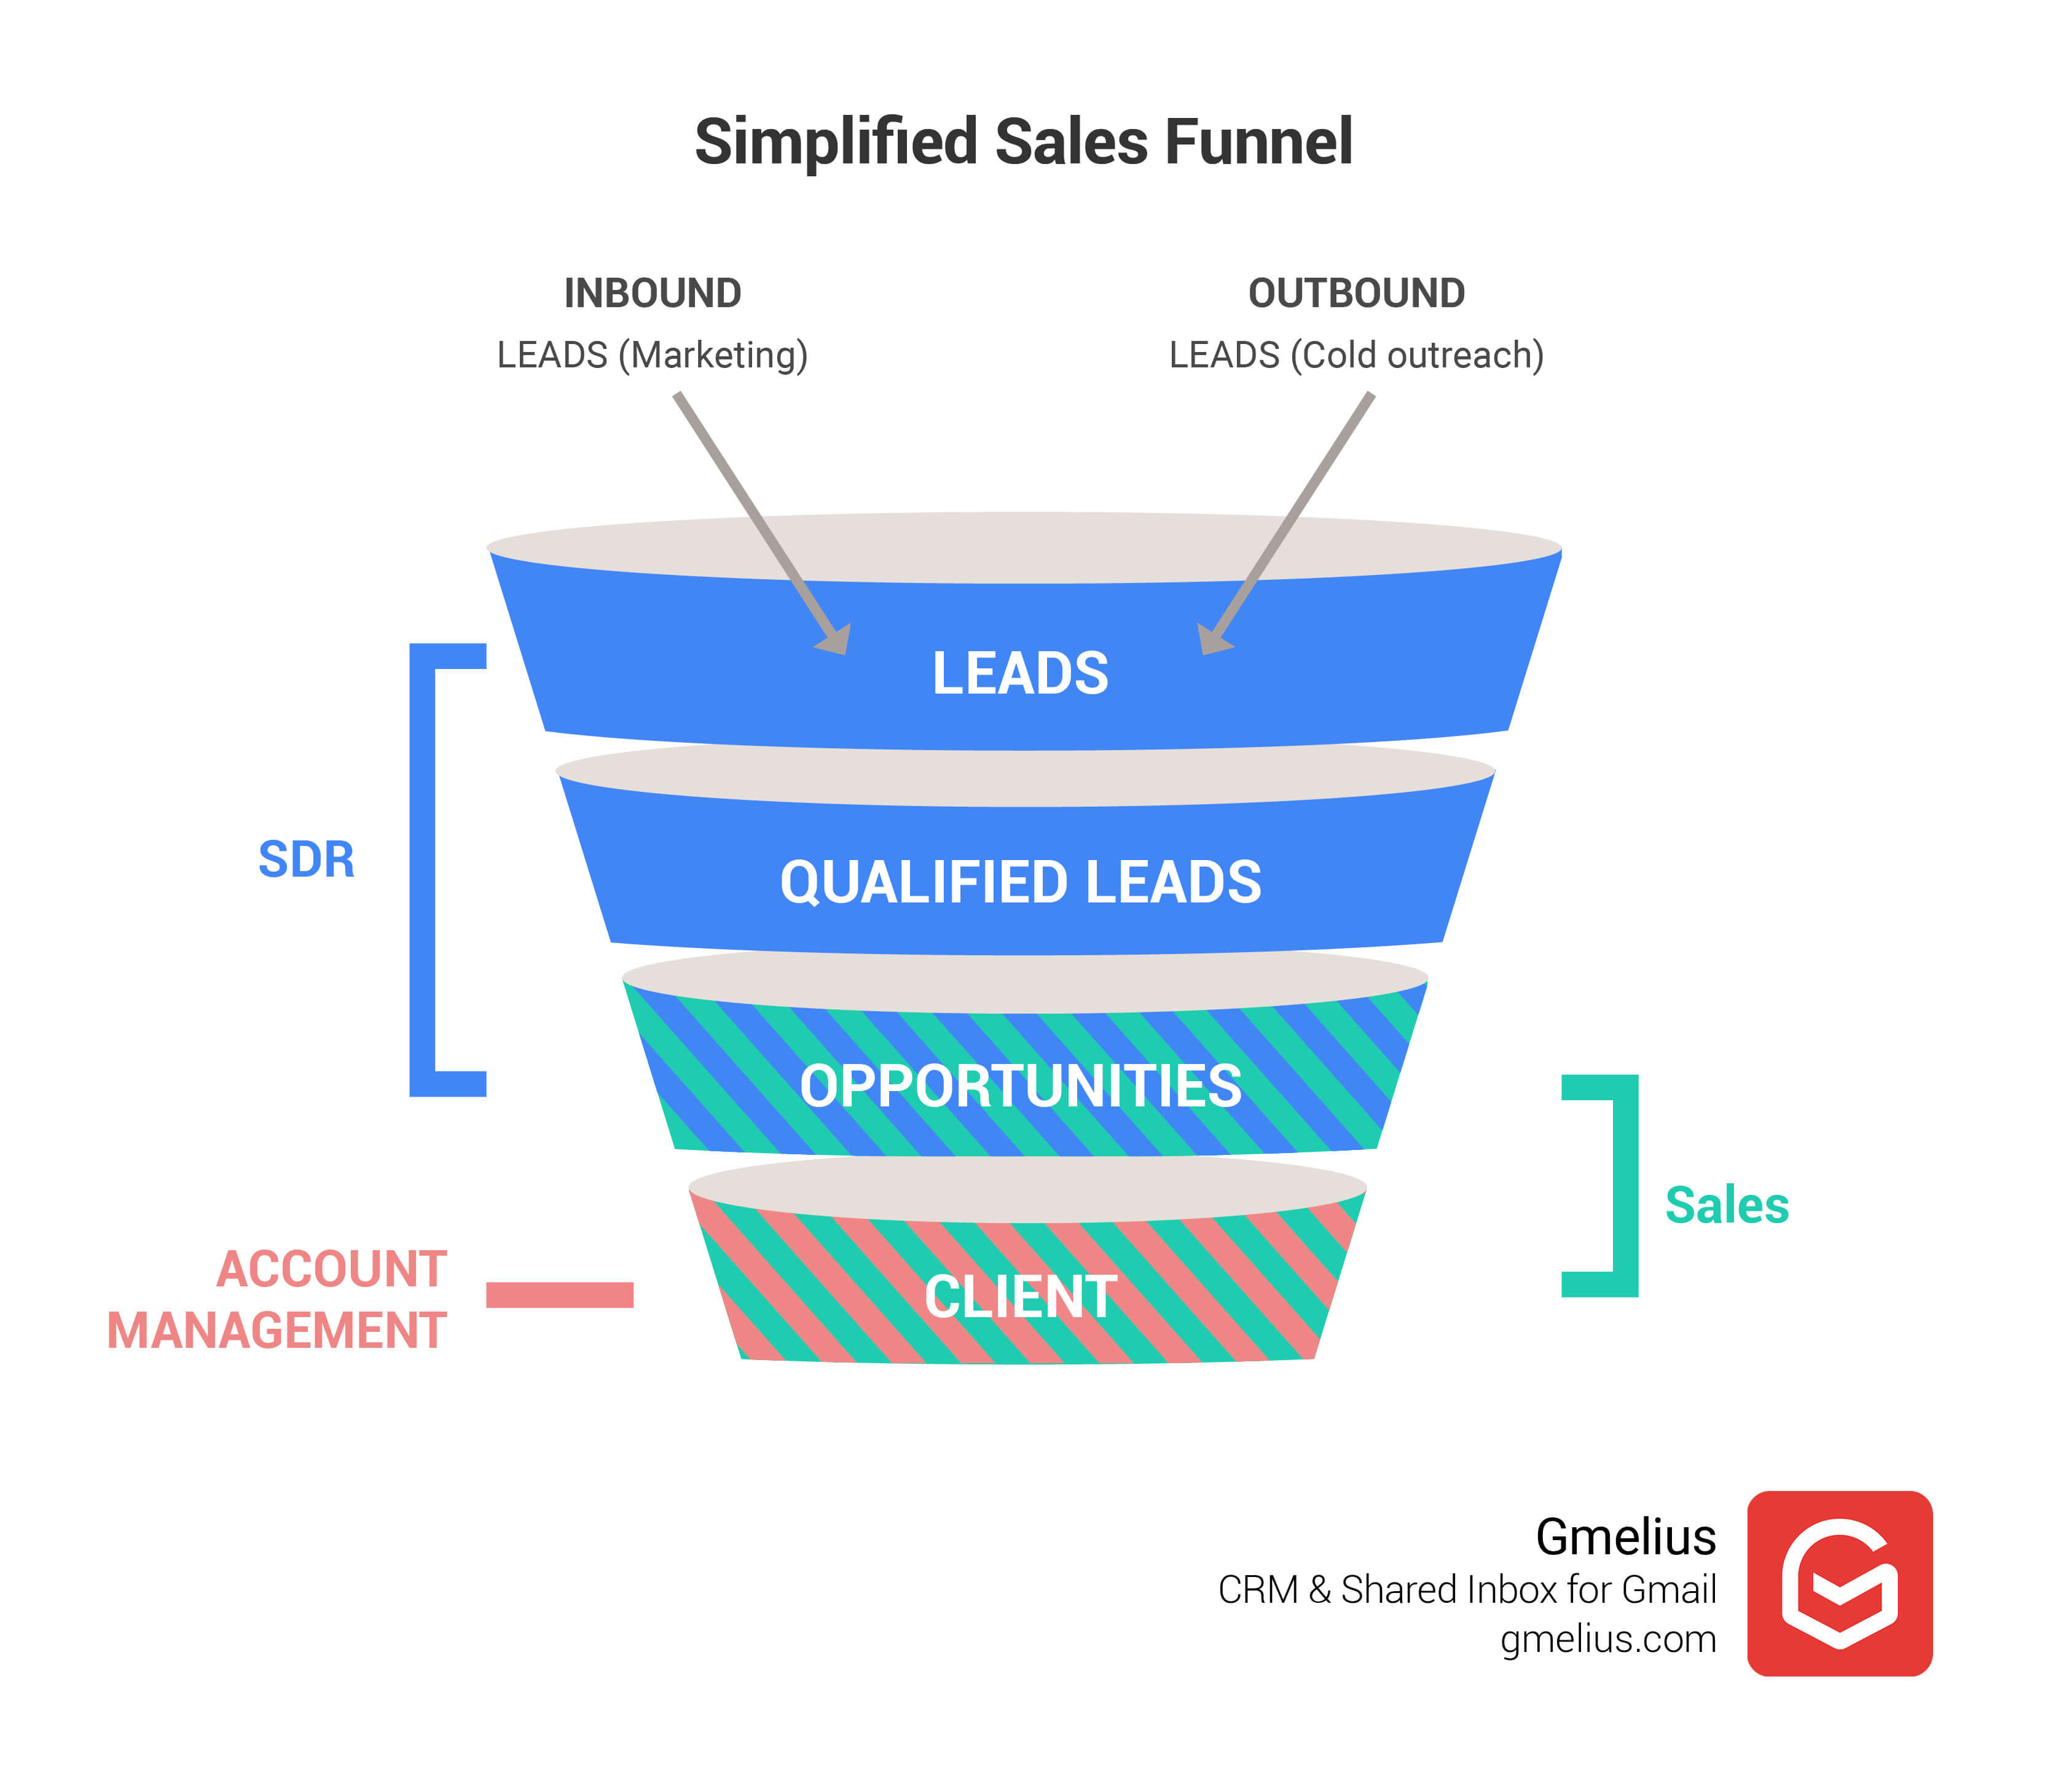 Simplified Sales Funnel